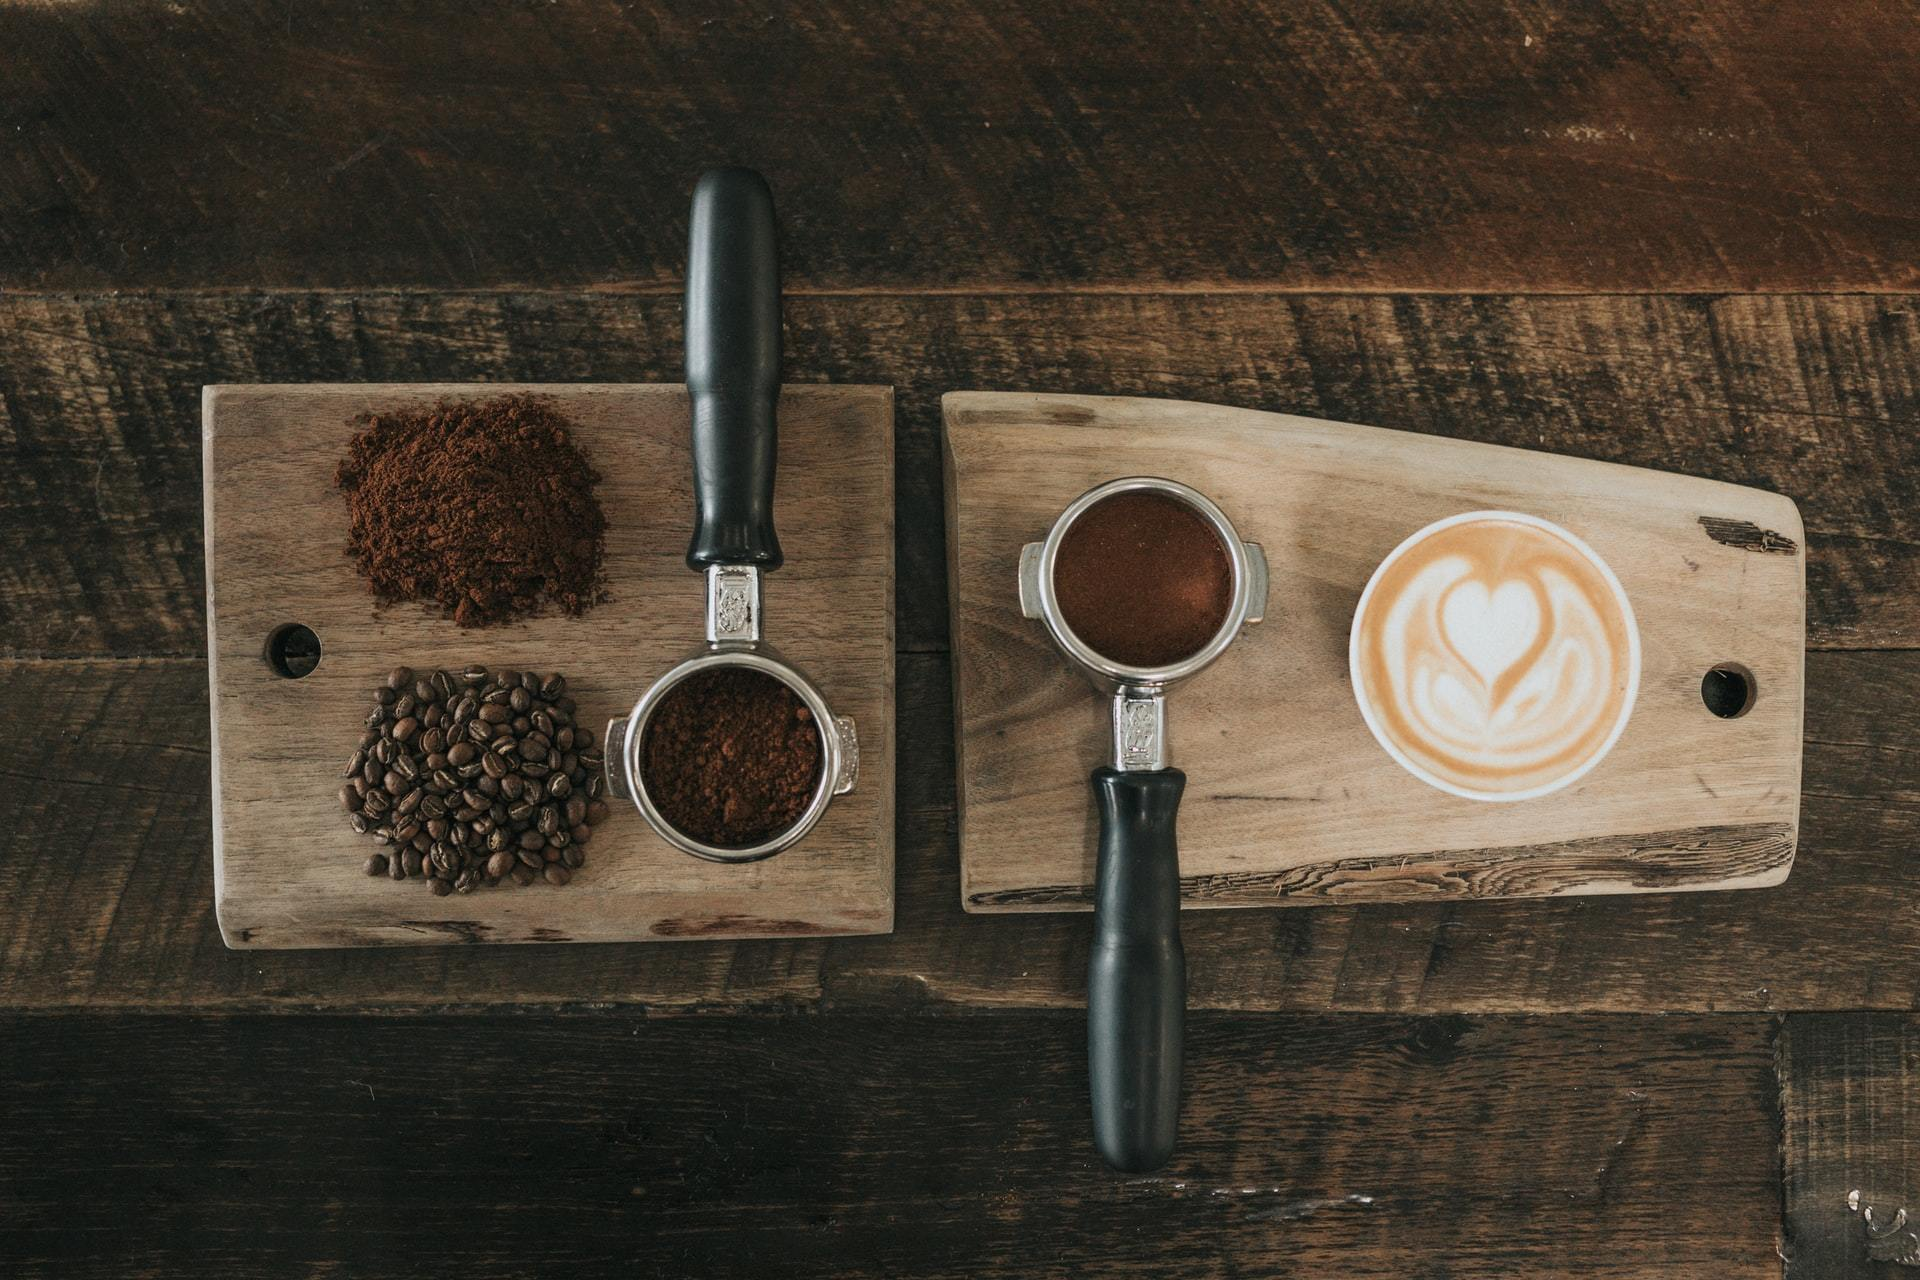 grind coffee without grinder